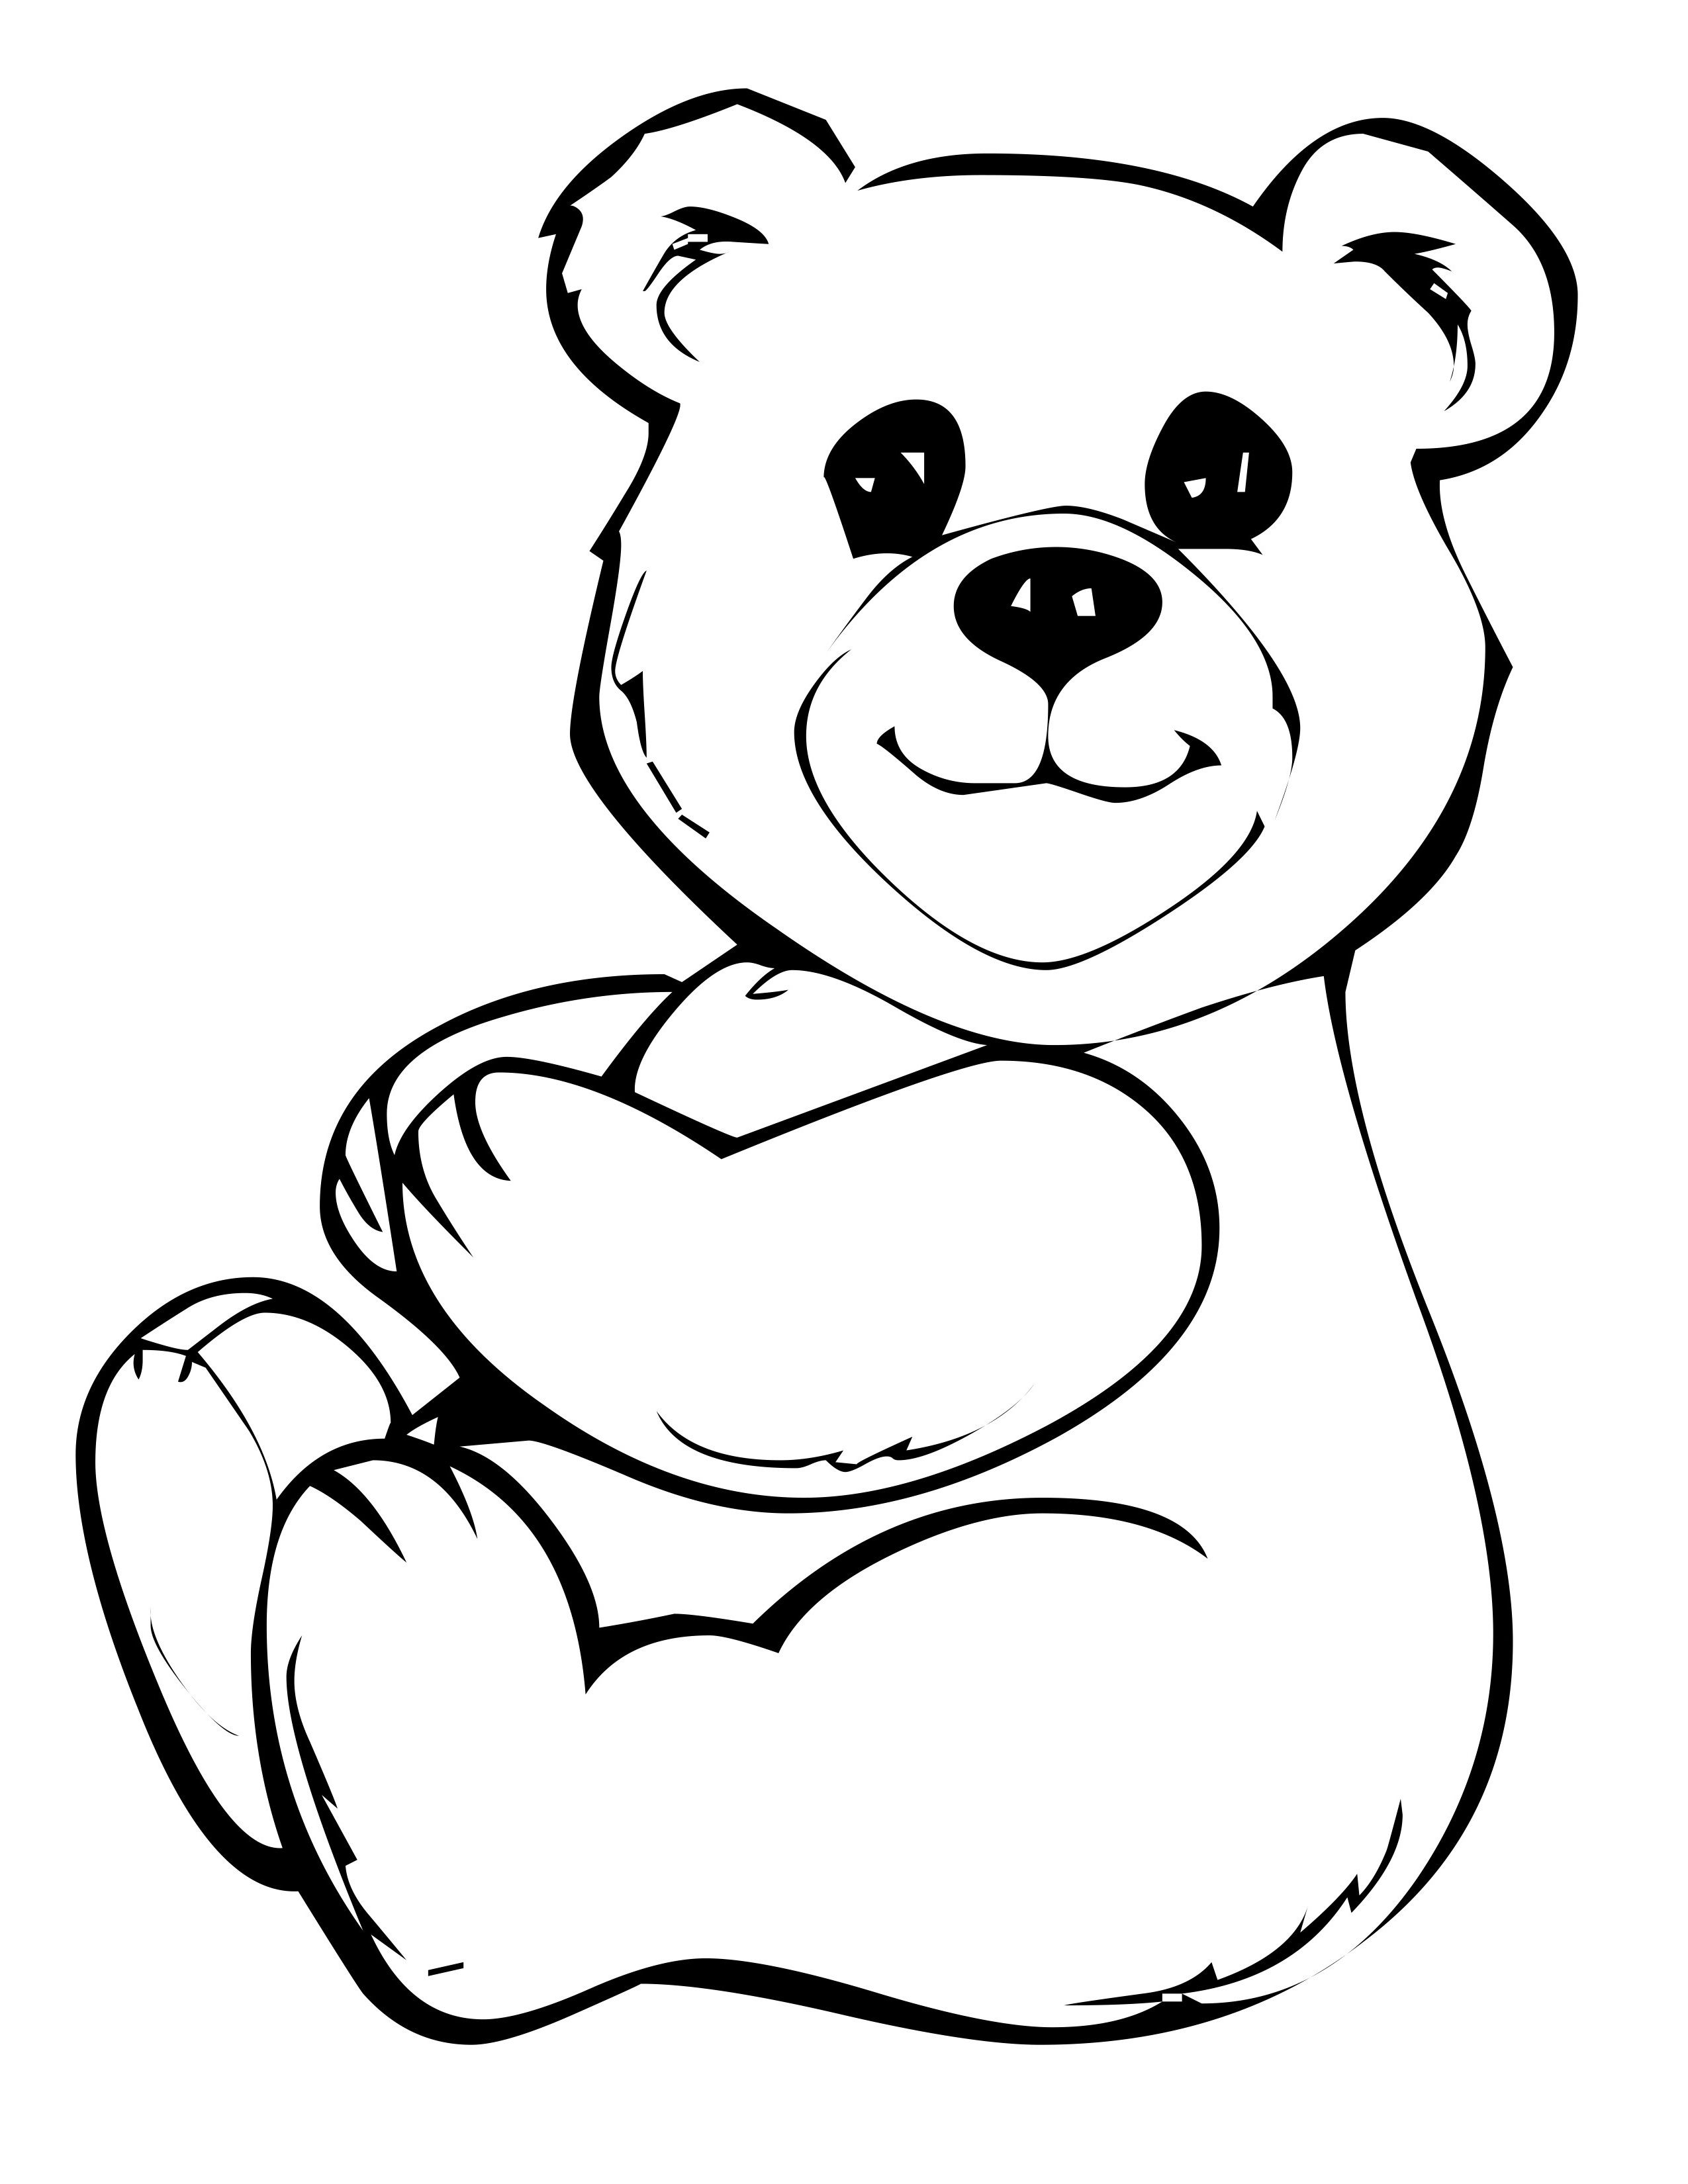 Cute Teddy Bear Coloring Pages Educative Printable Bear Coloring Pages Teddy Bear Coloring Pages Elephant Coloring Page